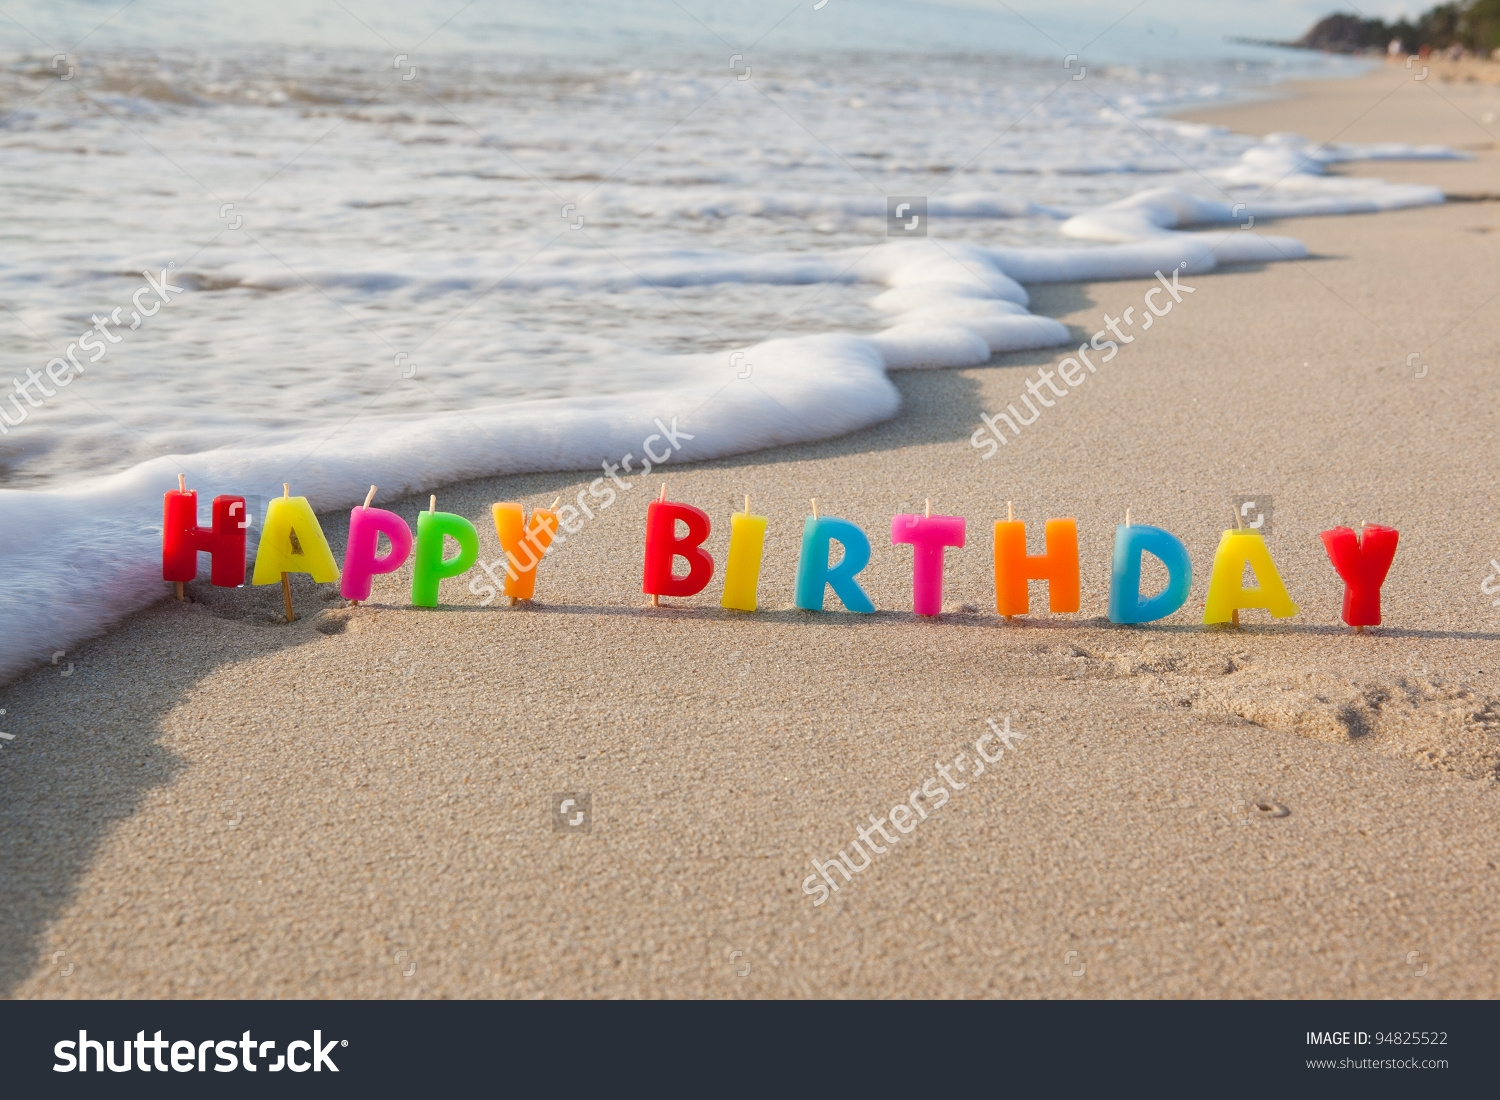 Happy Birthday Beach Clipart.